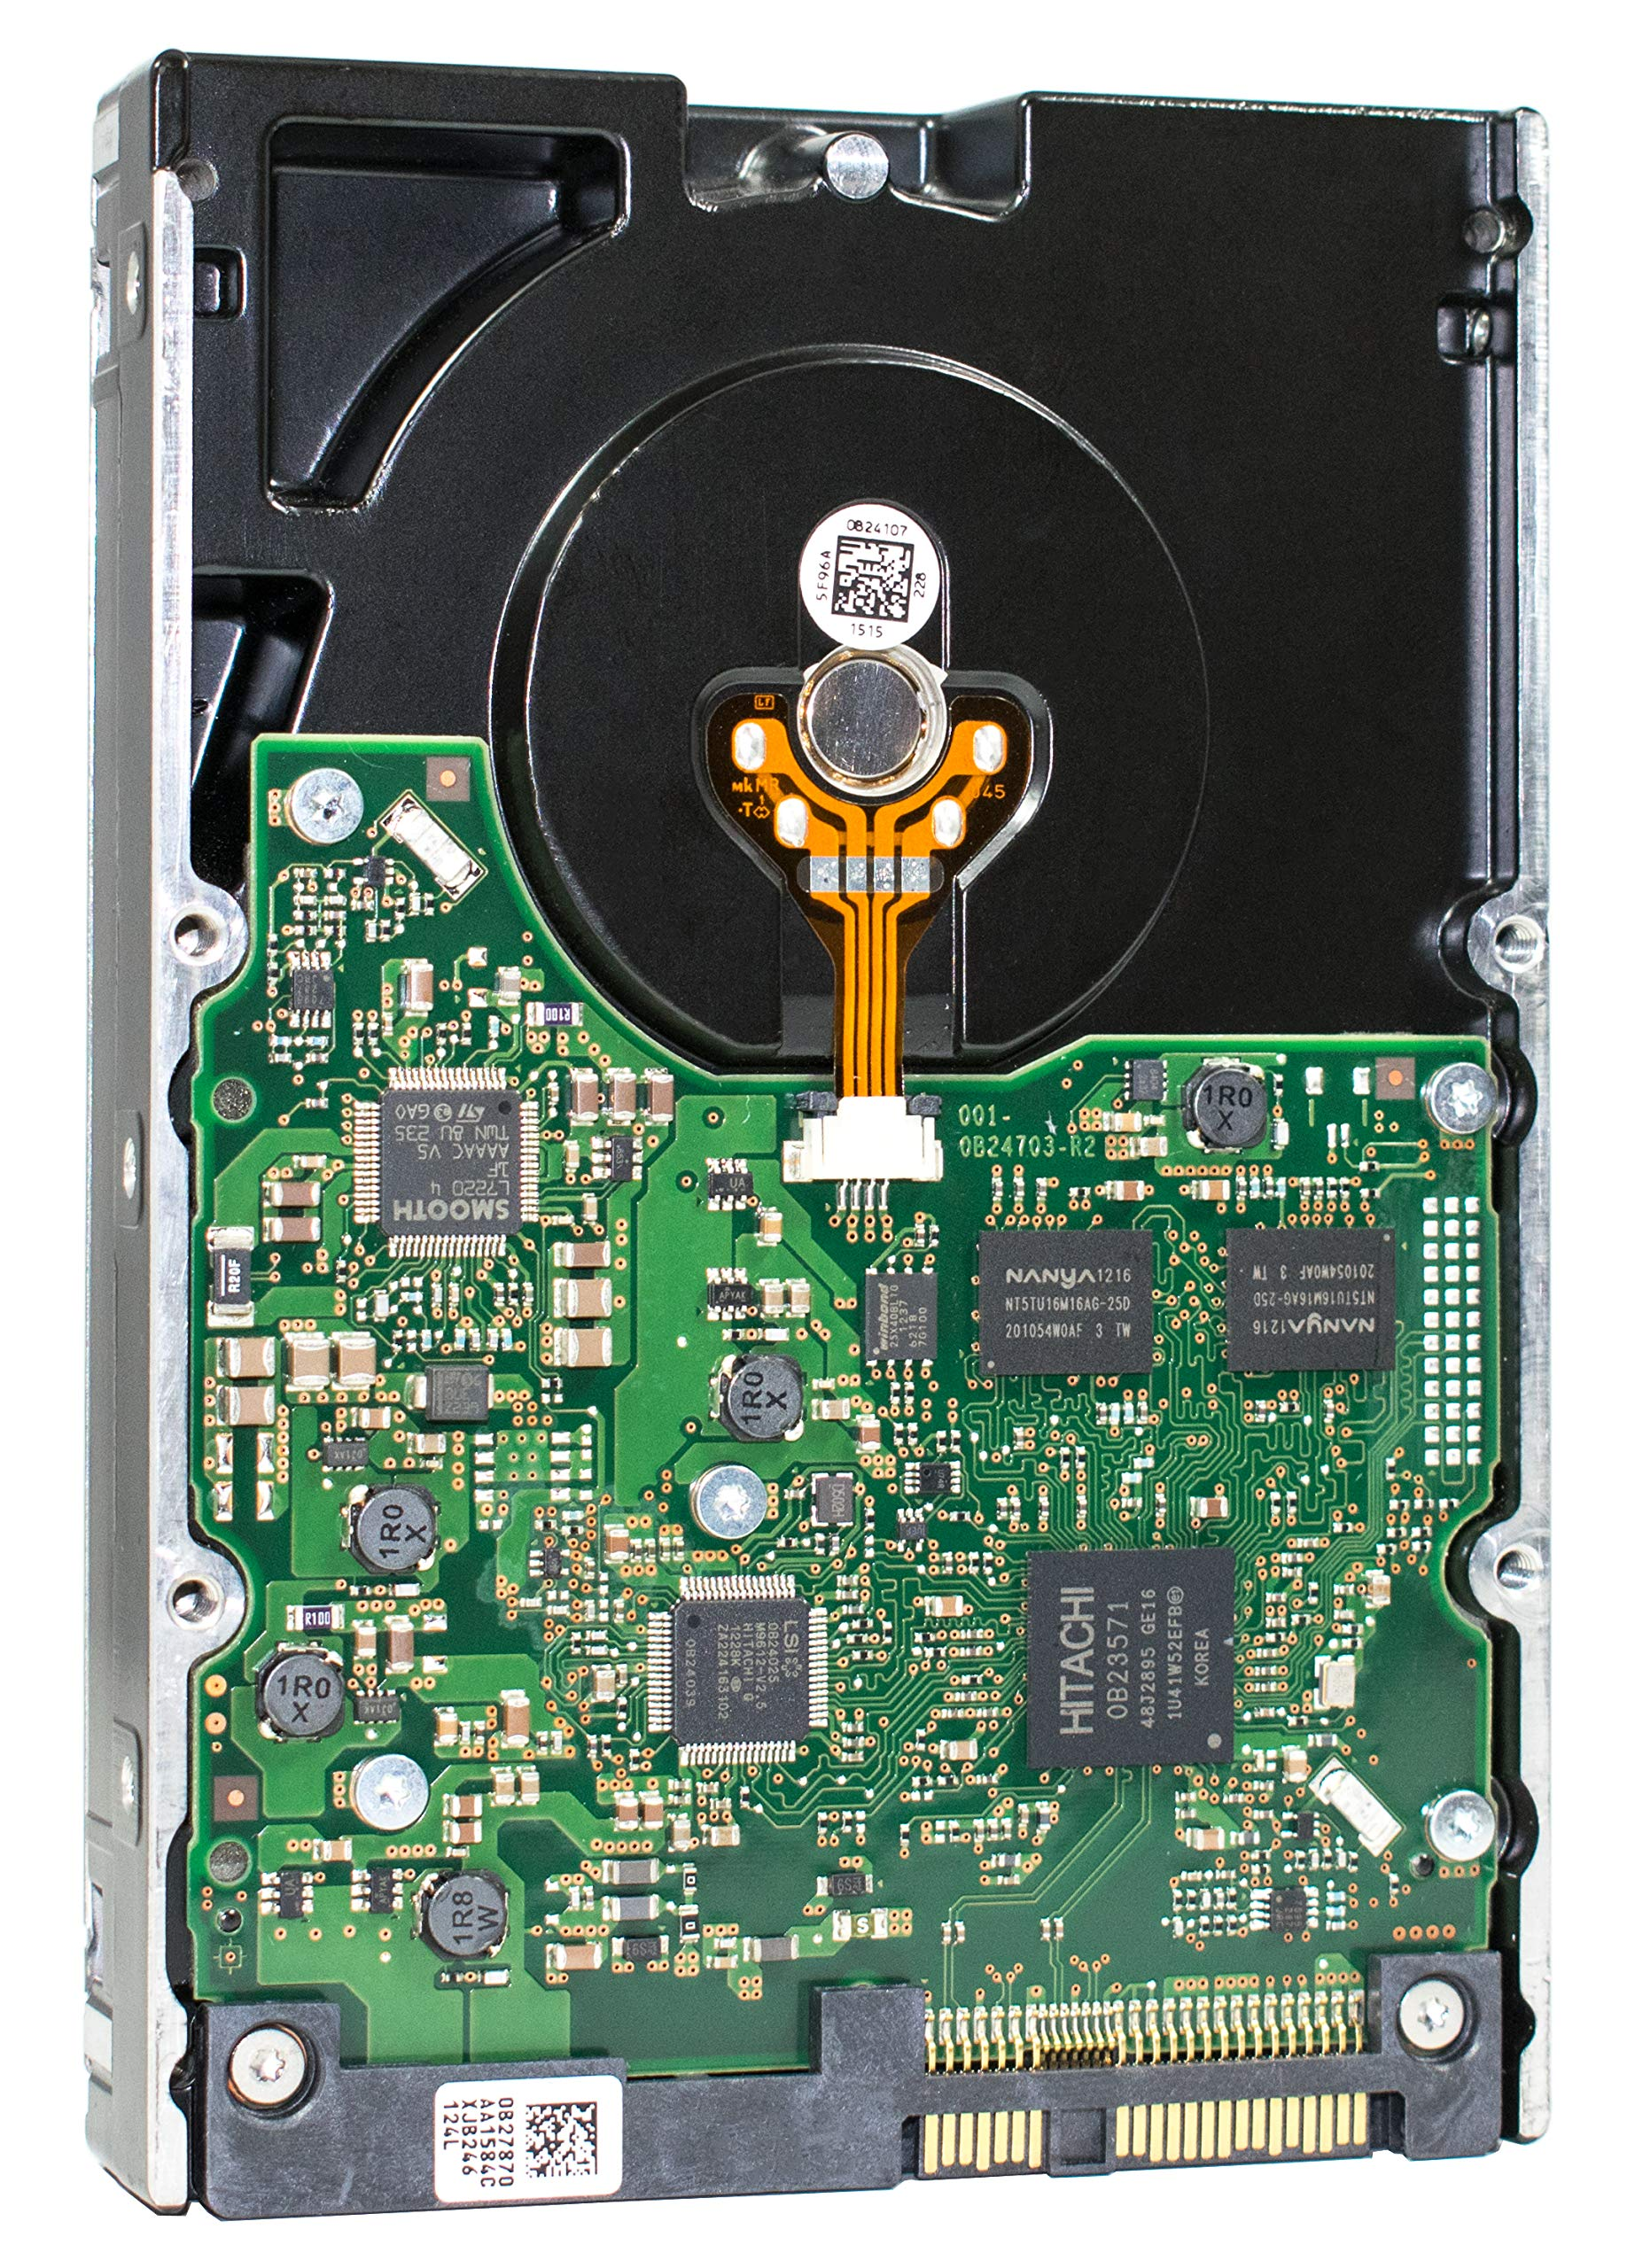 HGST Ultrastar 15K600 | 600GB 15K RPM SAS 6Gb/s 64MB Cache 3.5'' Inch | 1.6 Million MTBF | HUS156060VLS600 | Enterprise Hard Disk Drive With Mission Critical Performance (HDD) by HGST (Image #1)